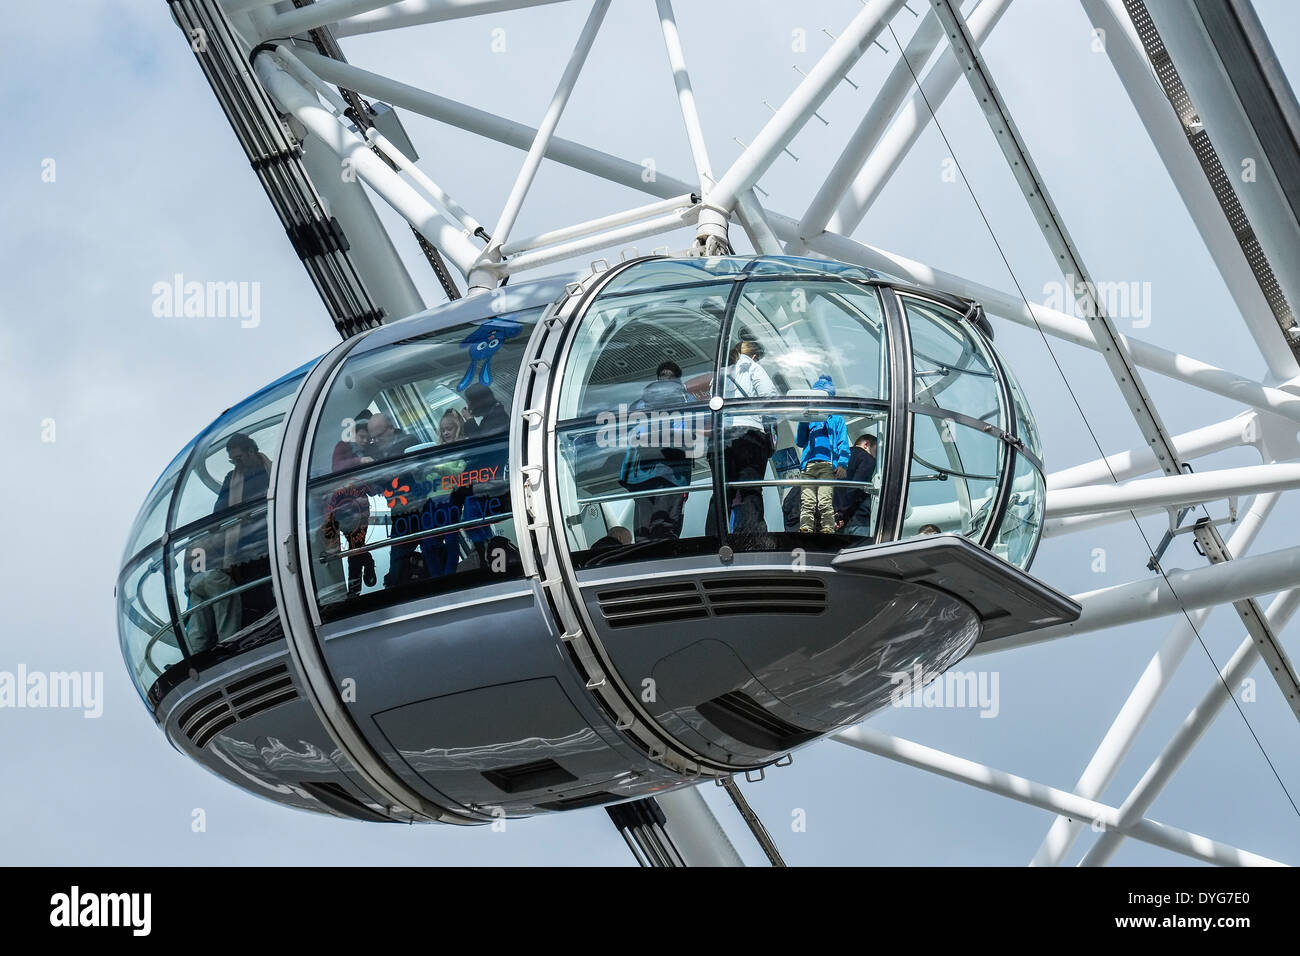 Tourists enjoying riding in a passenger capsule of the London Eye. - Stock Image